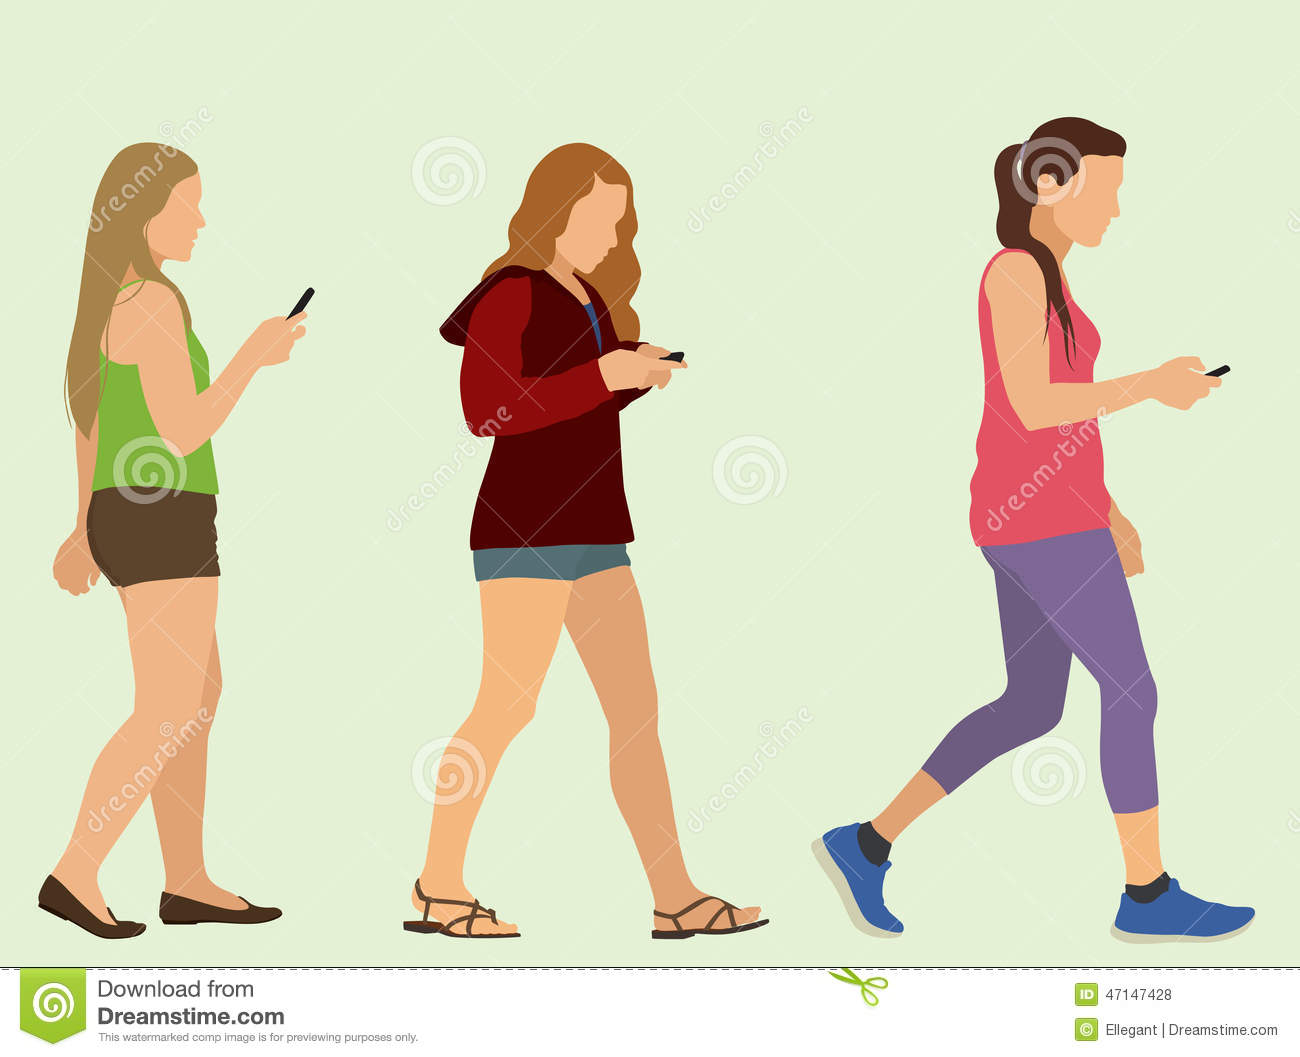 girl texting clipart - photo #10